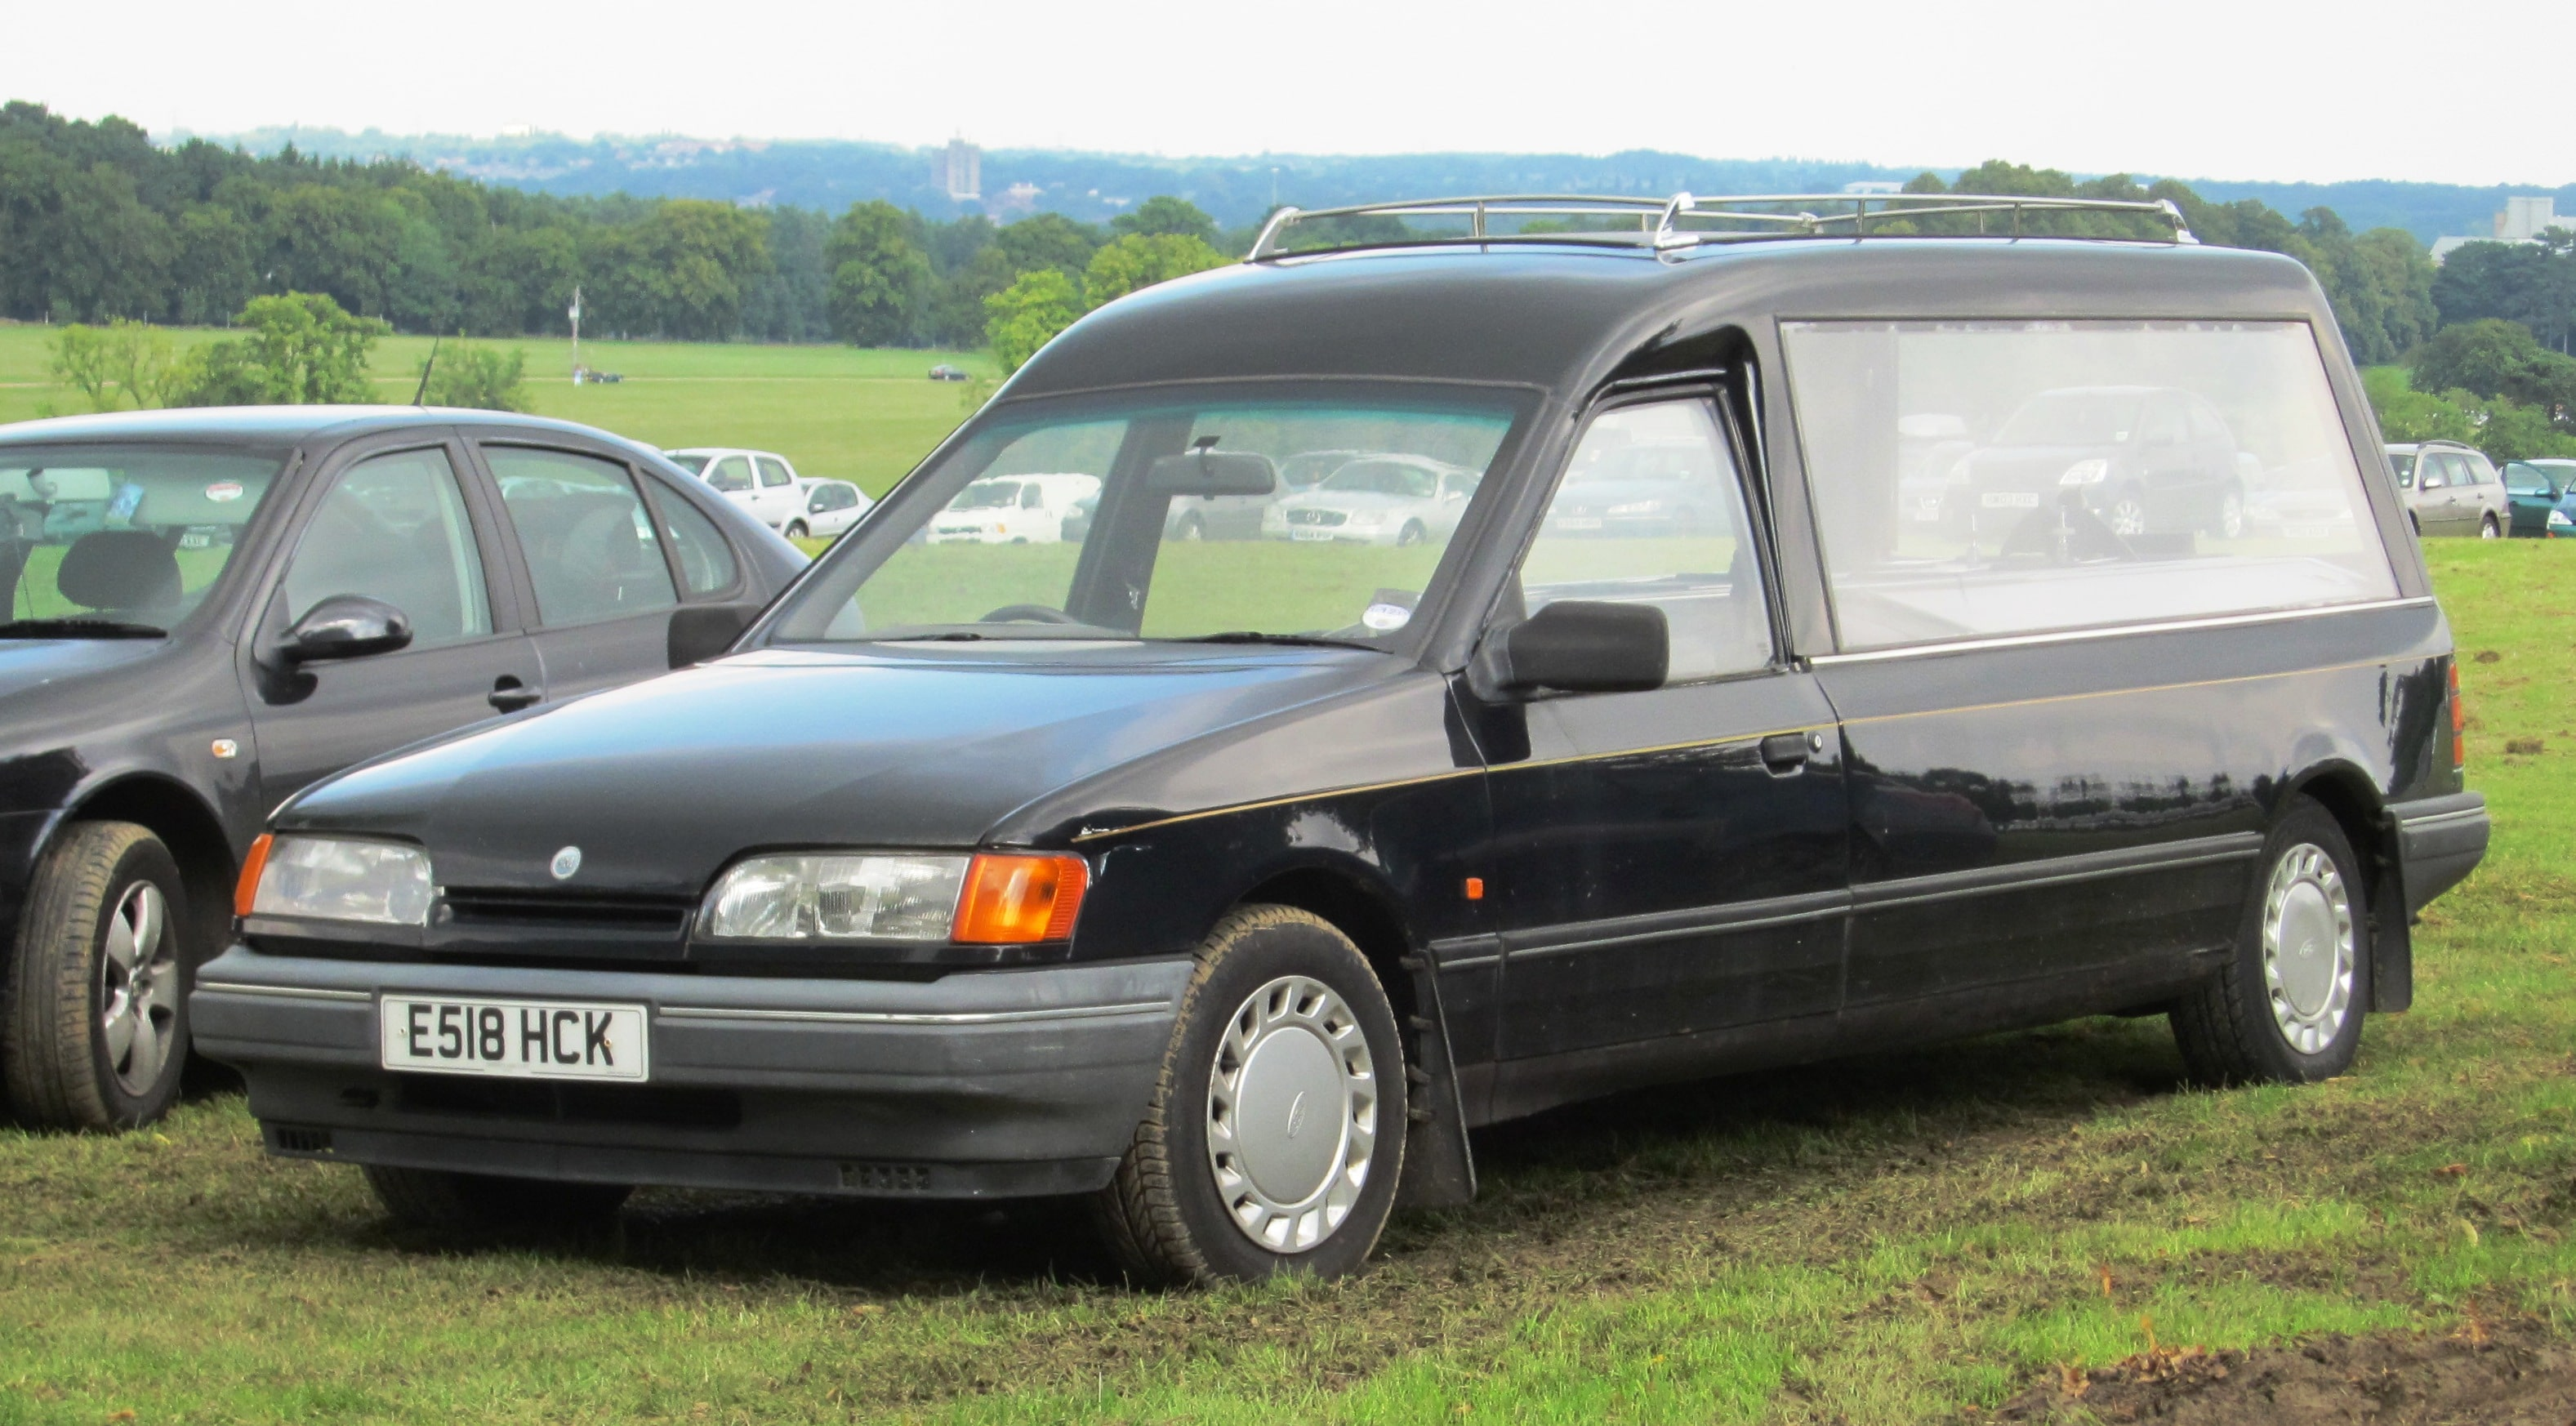 Camping, Carry on Camping, Sid James, Carry on, camper, camper van, mobile home, Ford Transit, Ford, Transit, Rover 800, limousine, hearse, ambulance, camper conversion, Starcraft, Cortina, Mercedes-Benz, Mercedes, cars, car, van, motoring, automotive, adventure, ebay, ebay motors, autotrader